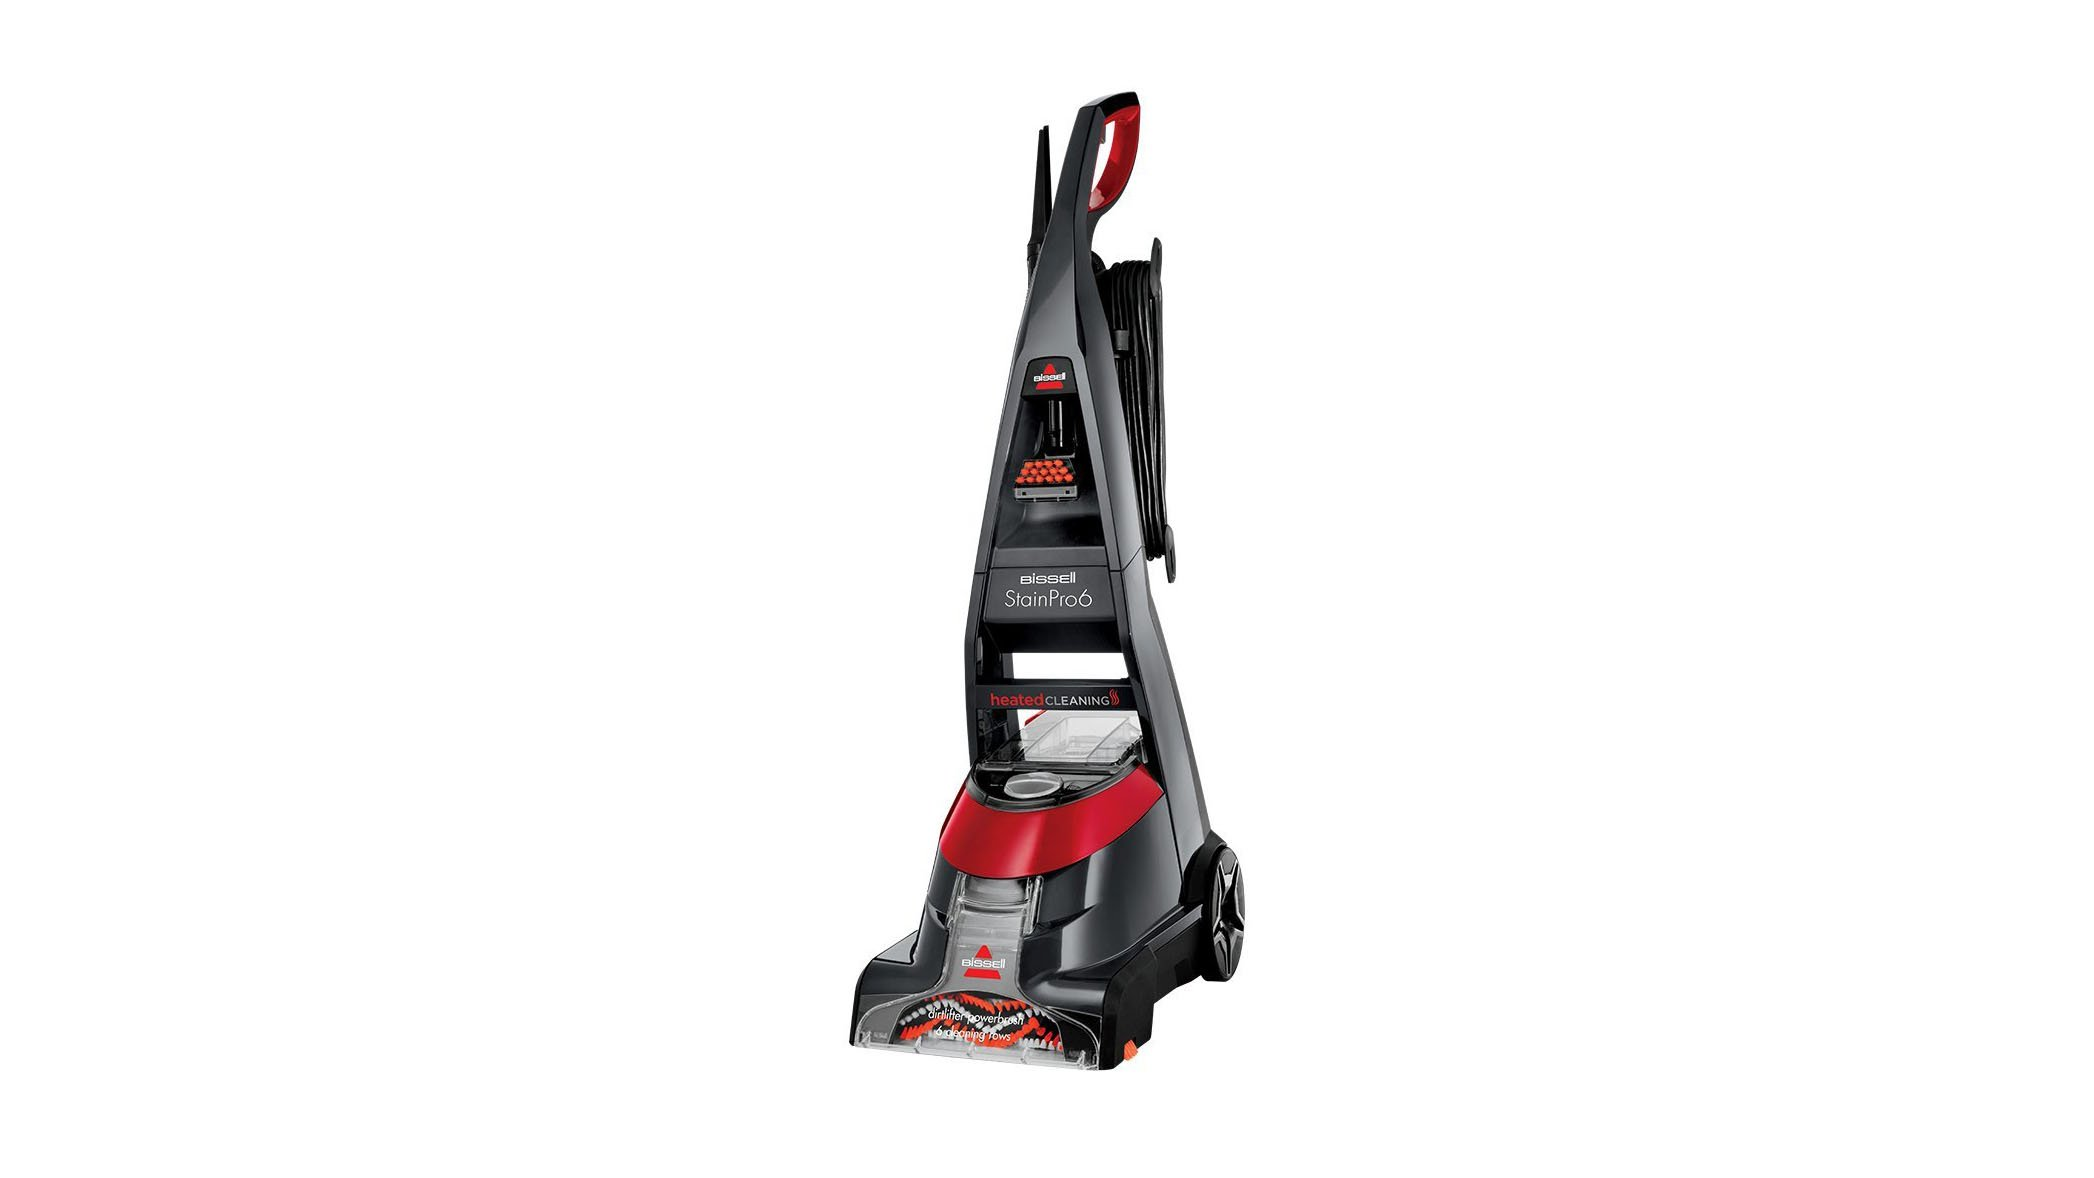 The Stainpro 6 Is Ideally Suited To Households With Two Or Three Carpeted Rooms Despite Its Bersome Dimensions It S An Excellent Performer And Pretty